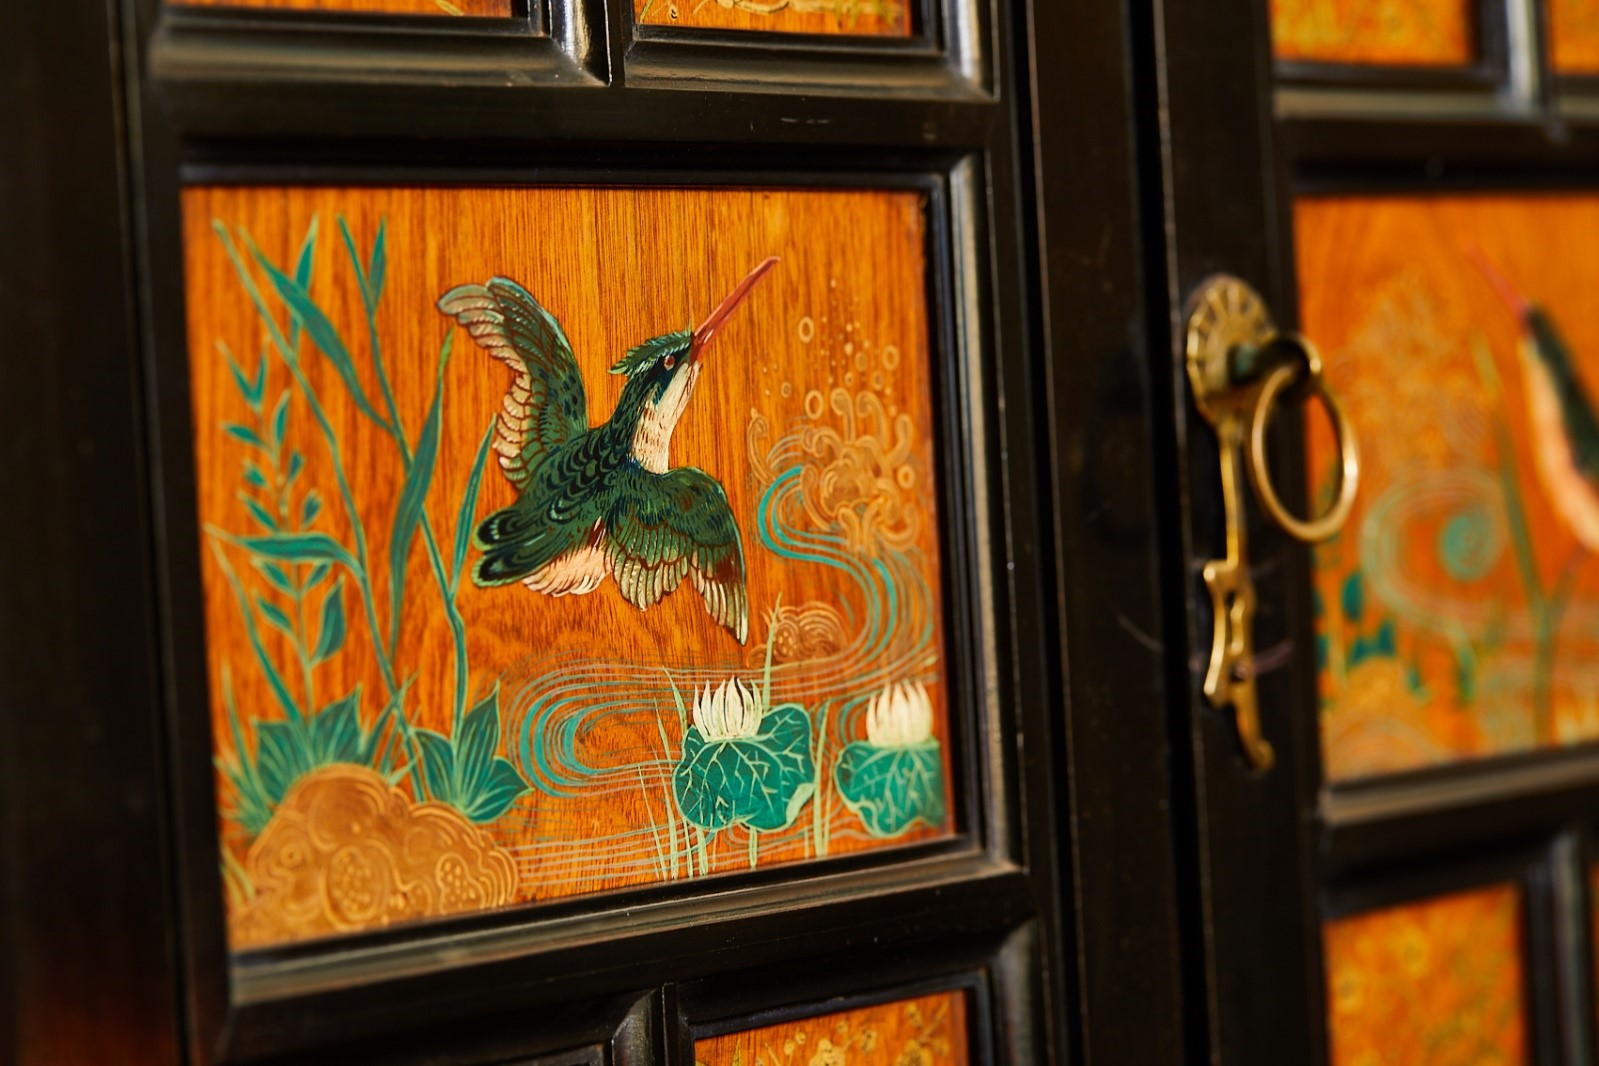 A panel of a cupboard door decorated with the image of a kingfisher by a river.